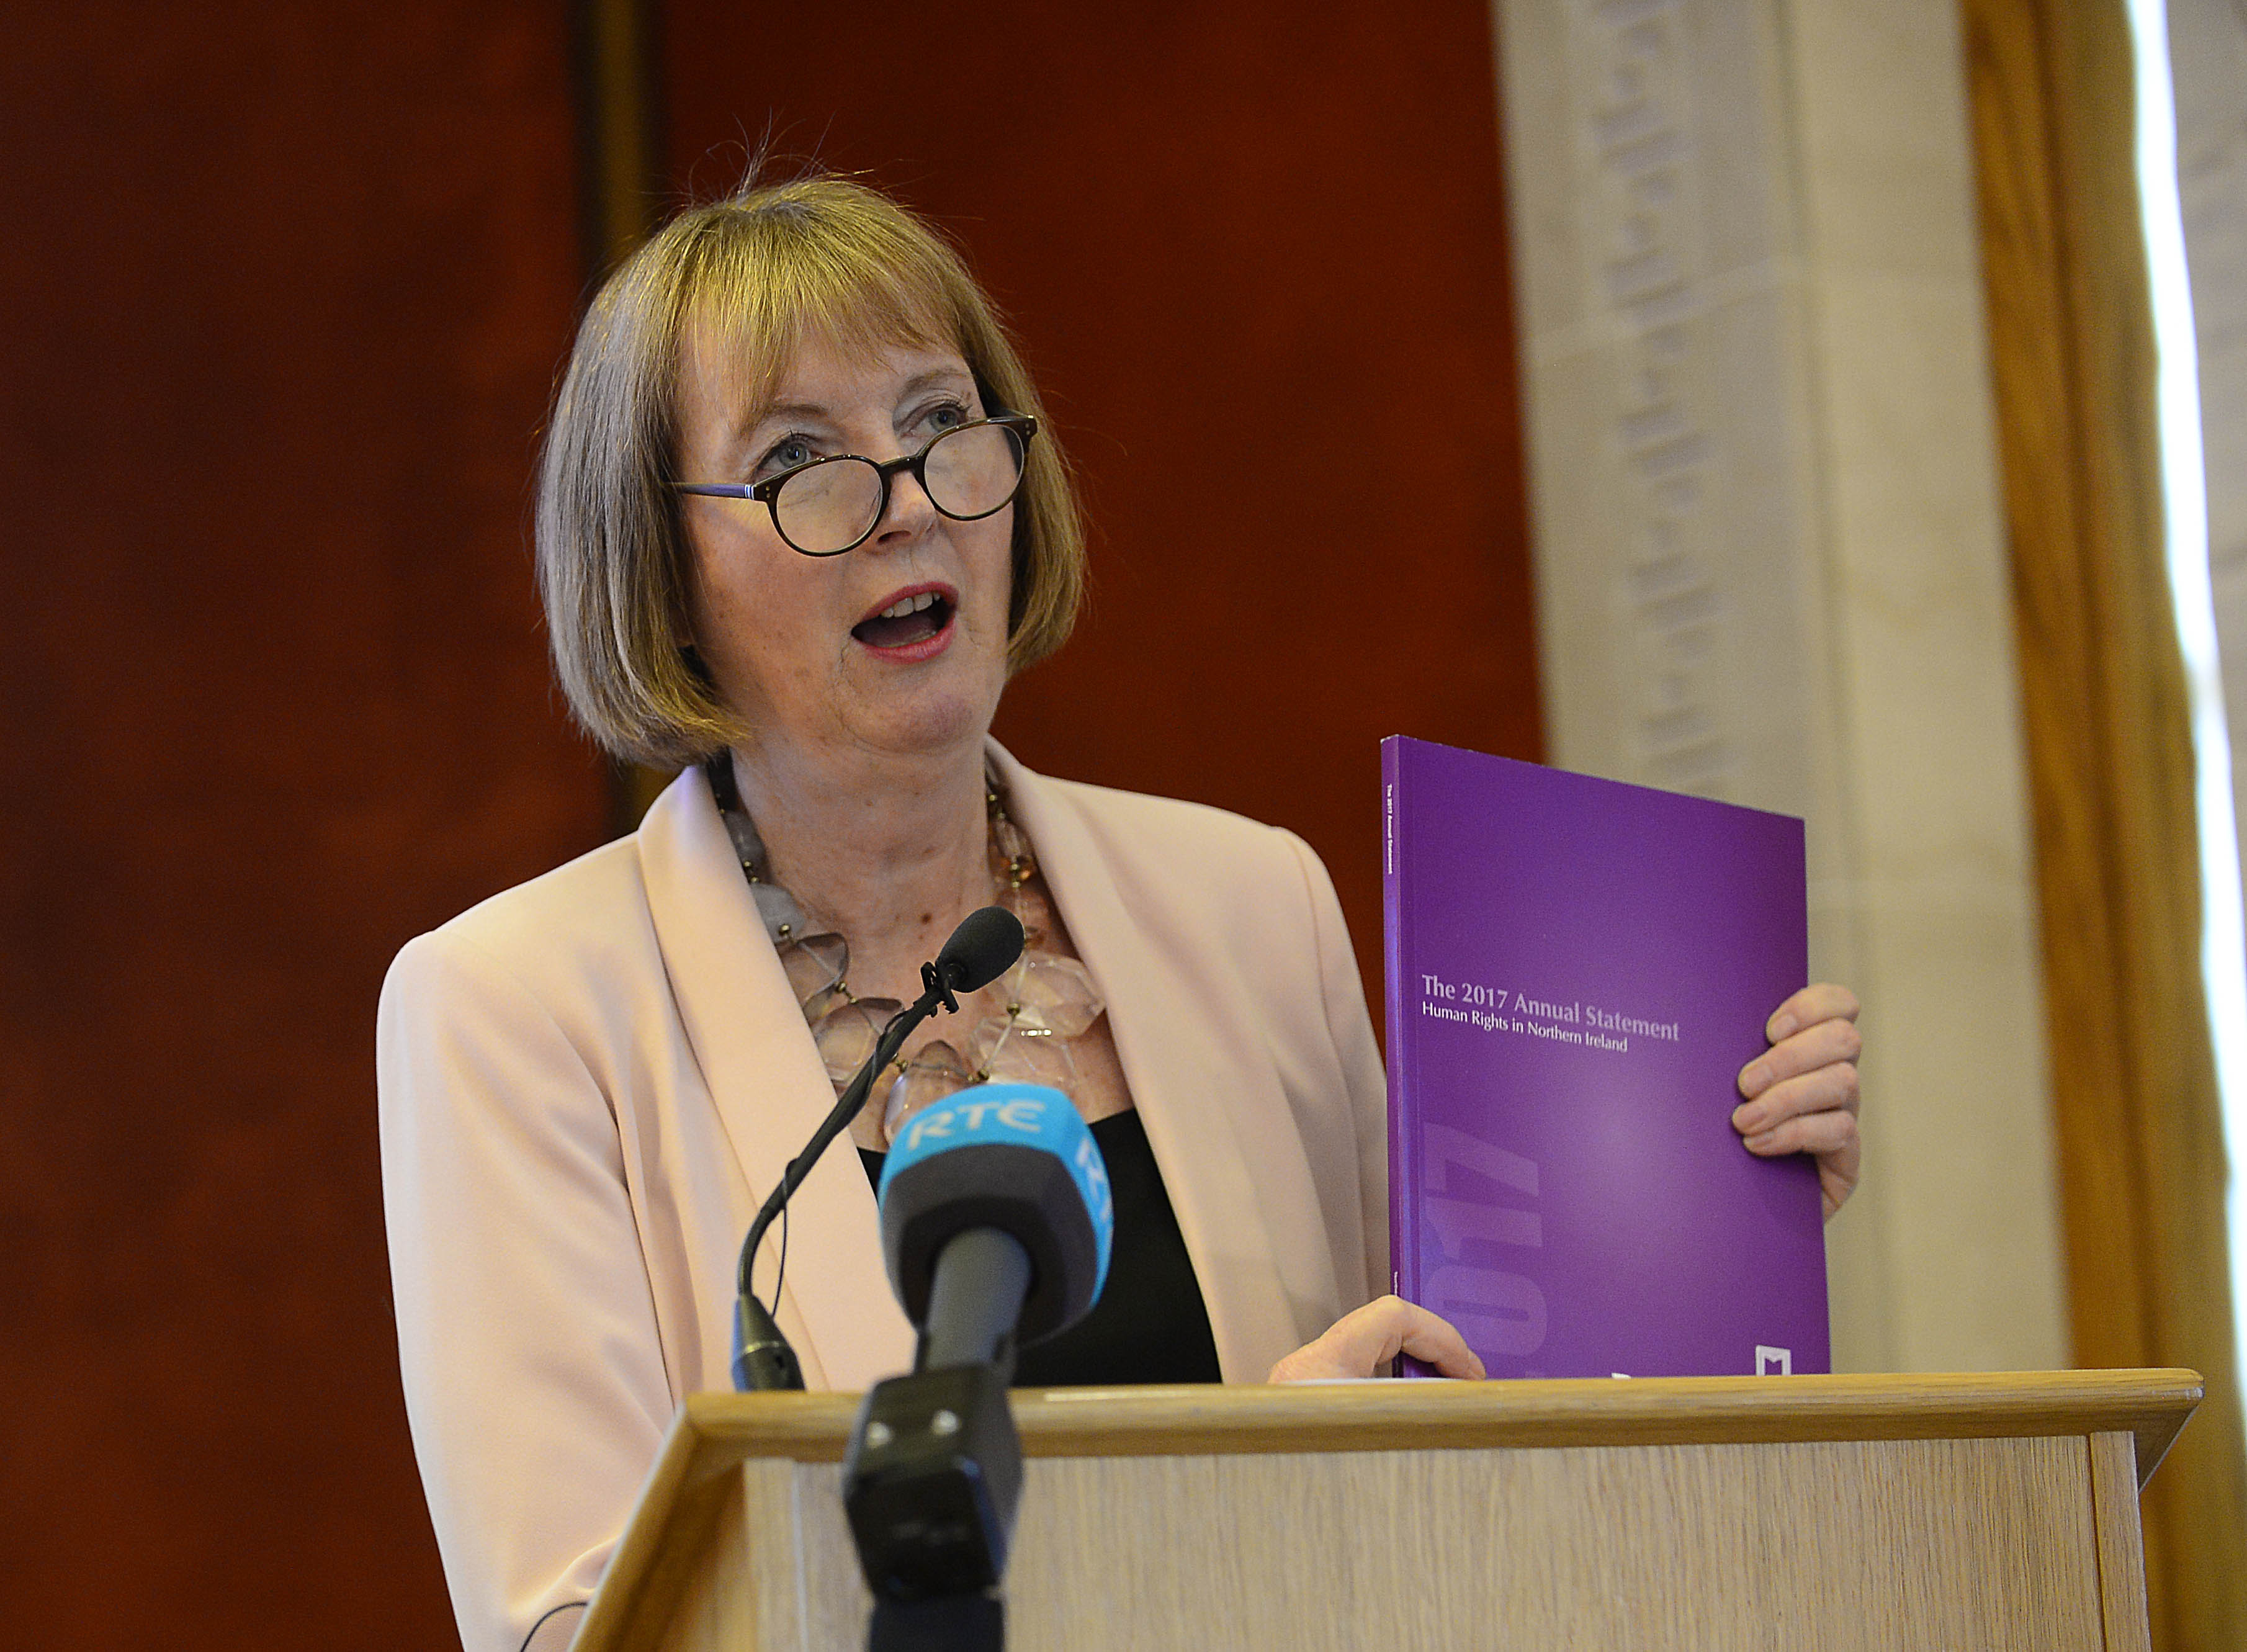 04c5e56b6 Rt Hon Harriet Harman QC MP to focus on Gender Equality at NIHRC Annual  Statement 2017